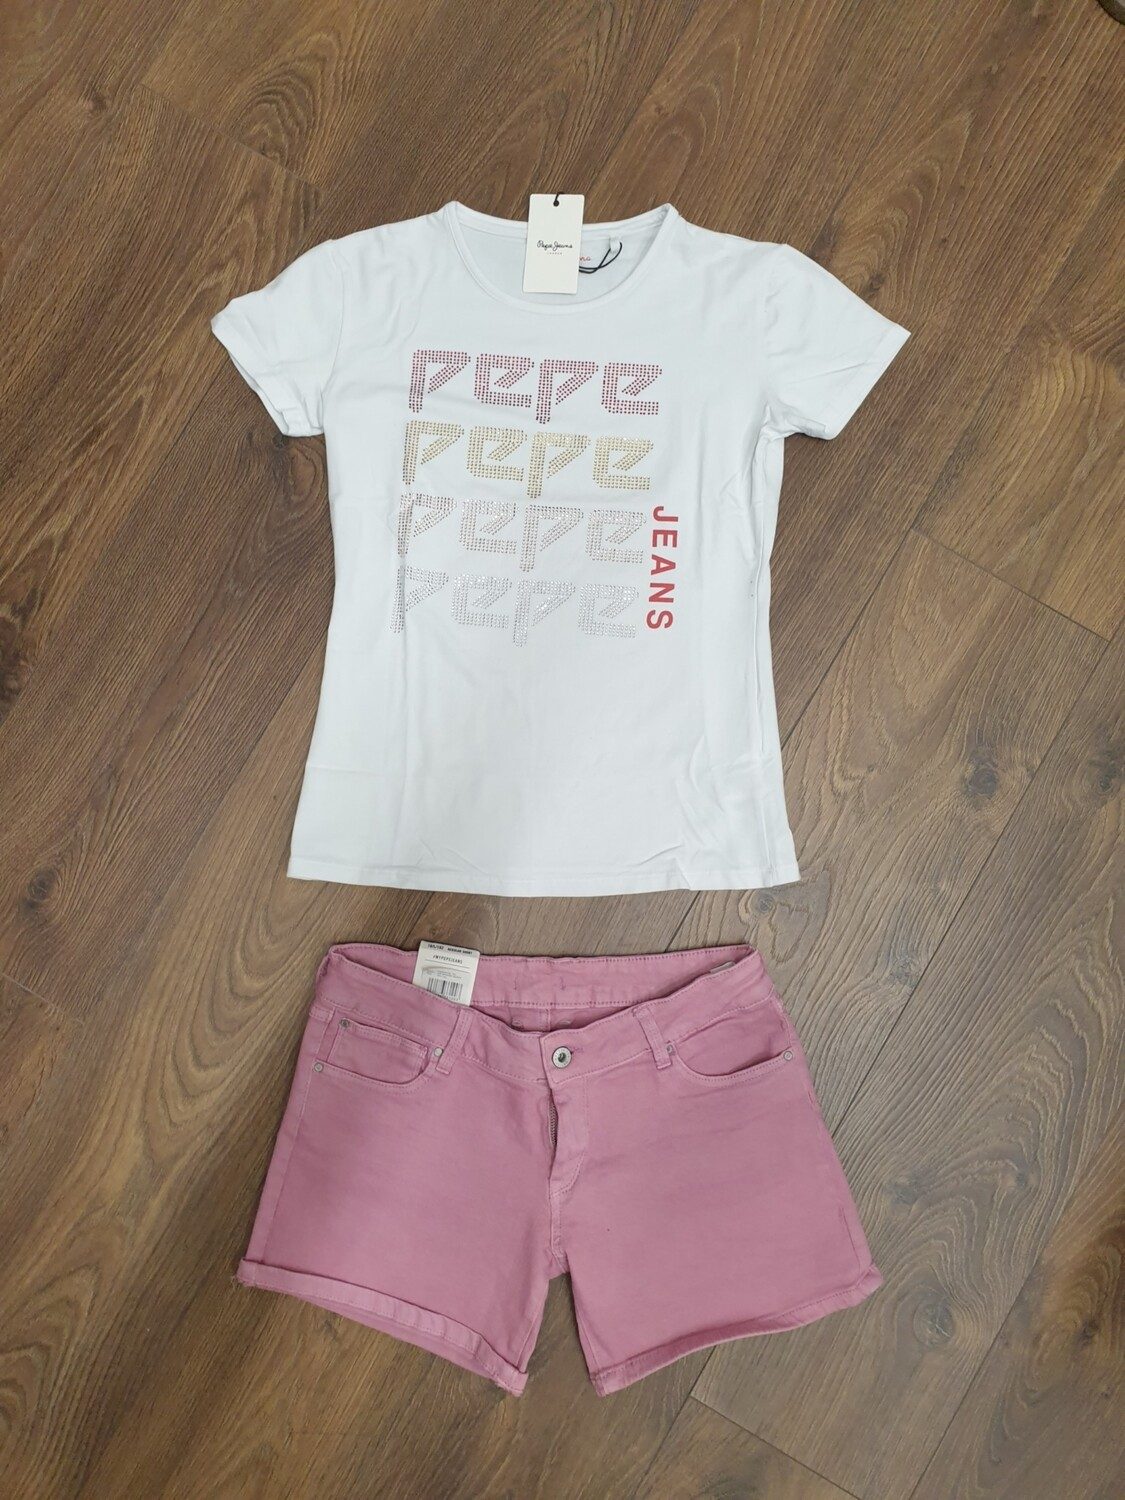 Completo Pepejeans